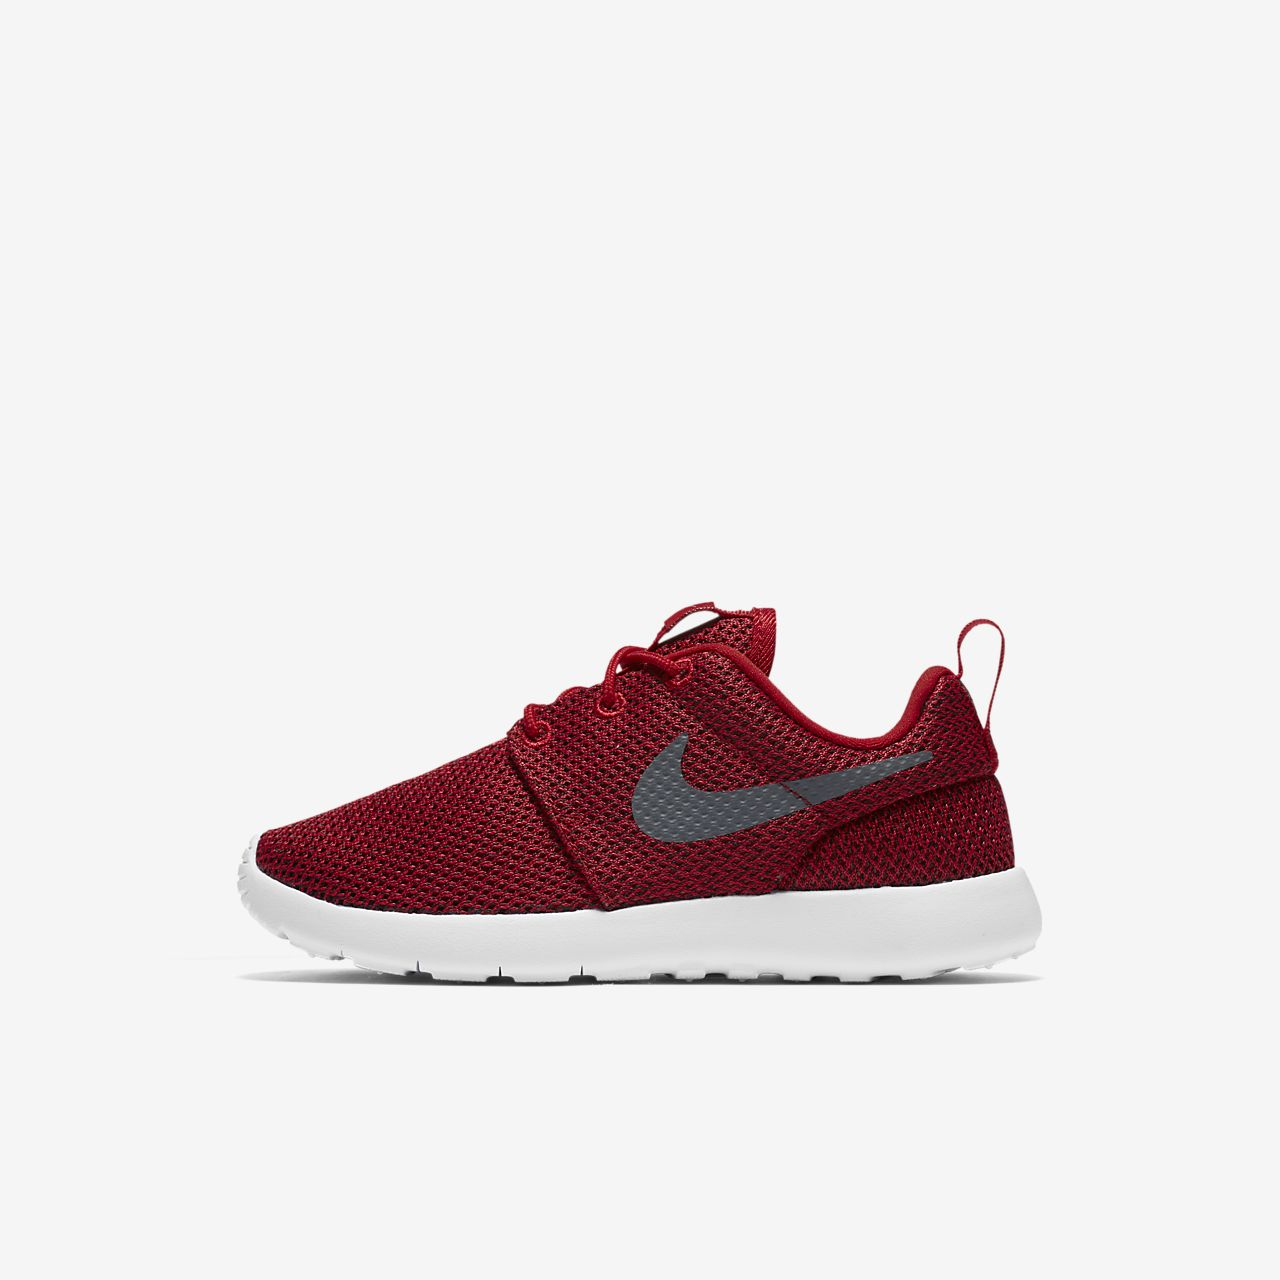 Cheap Buy Roshe Shoes. Nike.com